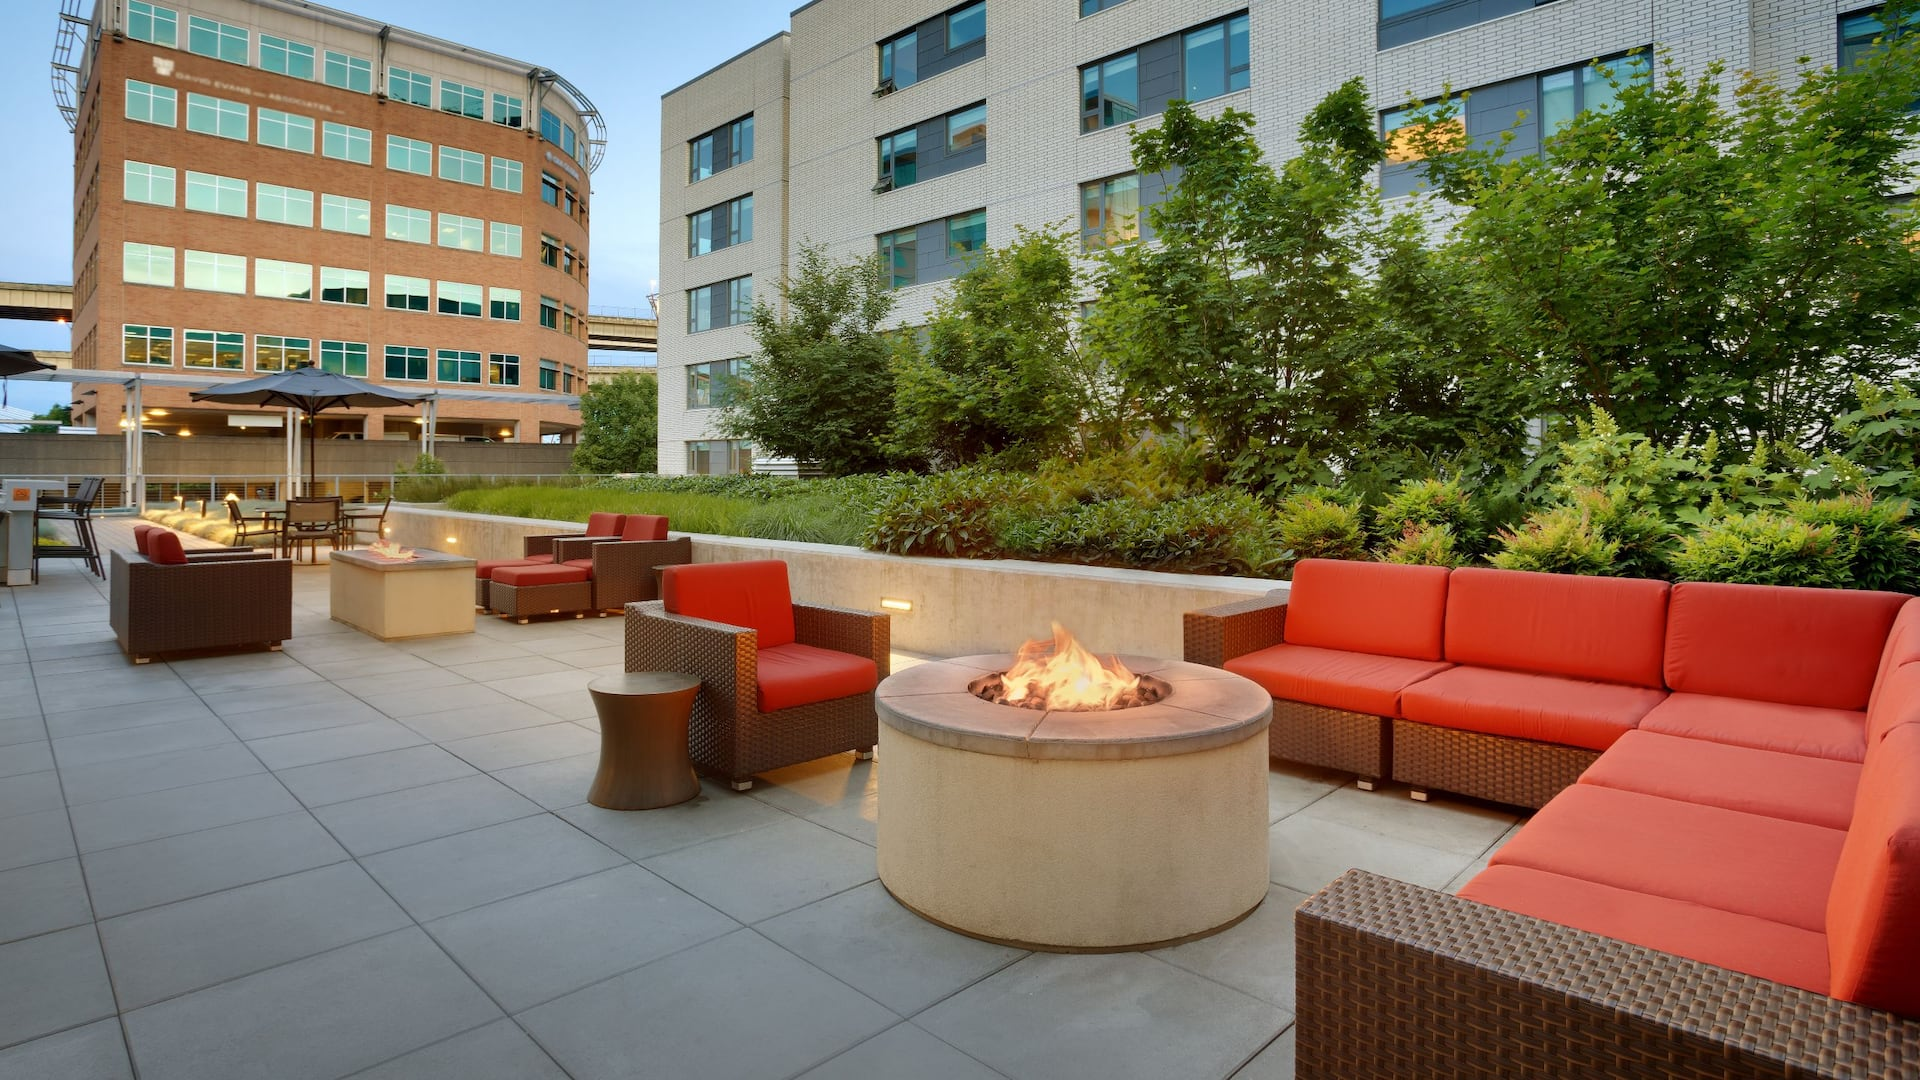 Outdoor Commons Fire Pits Night